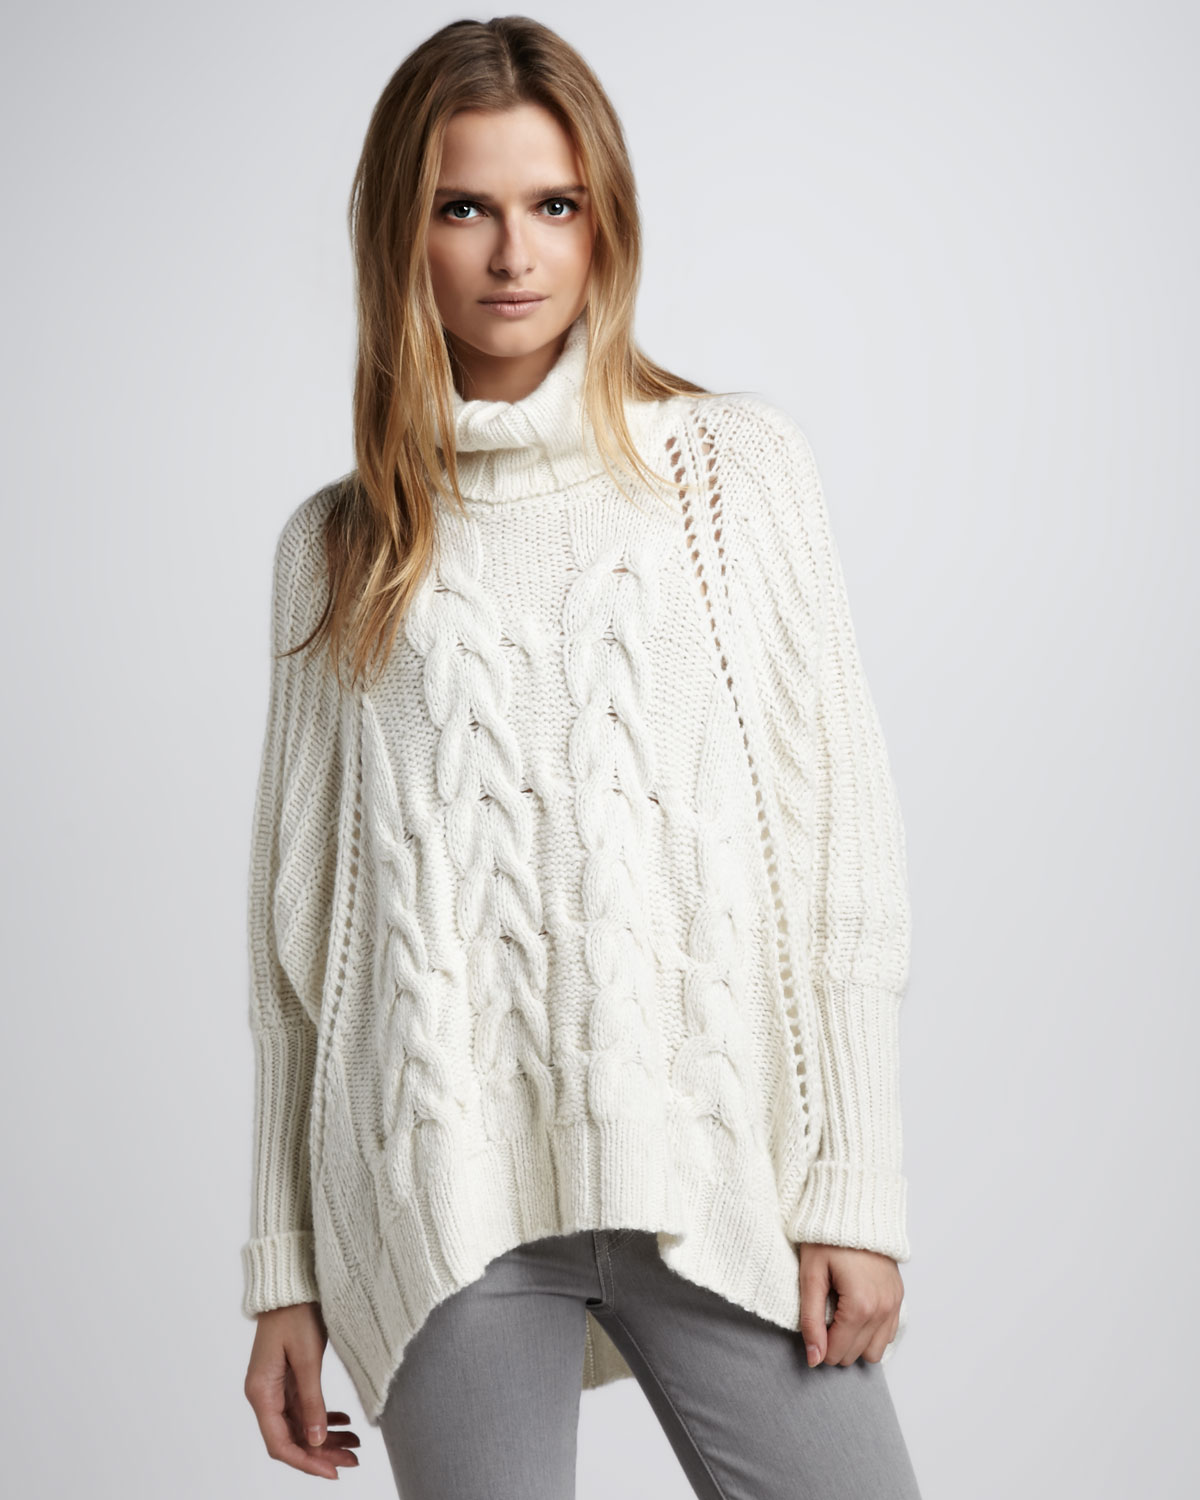 Autumn cashmere Chunky Cable Sweater in White | Lyst